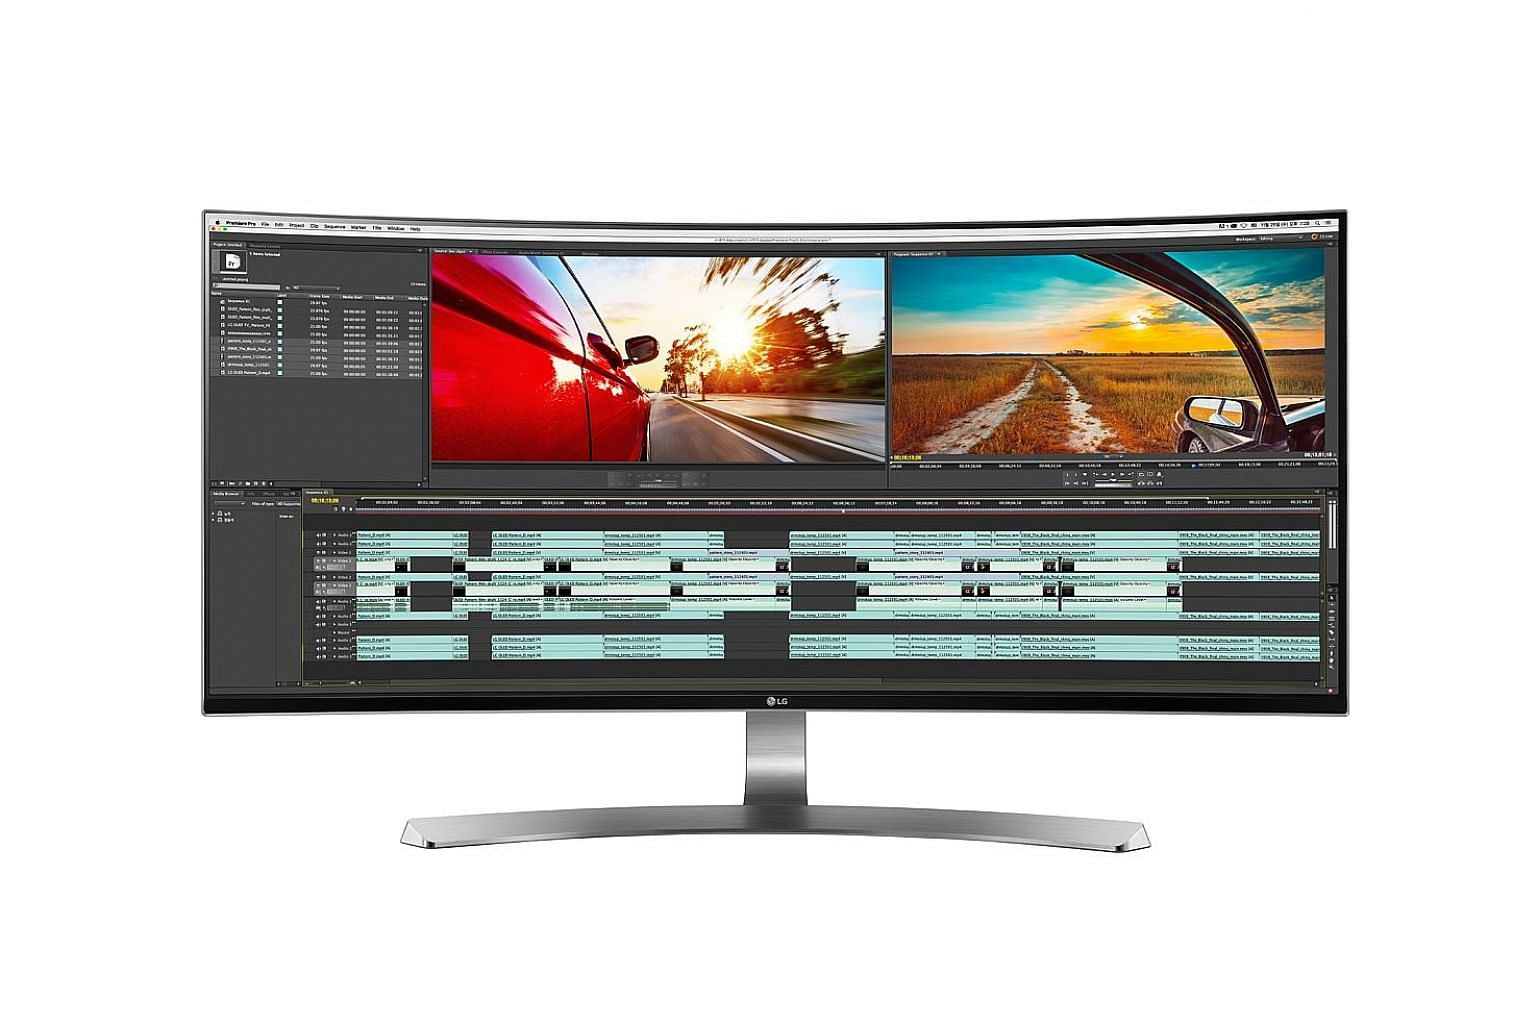 The wider screen of the LG 34UC98 UltraWide monitor offers ample space for multiple documents or windows to be placed side by side.